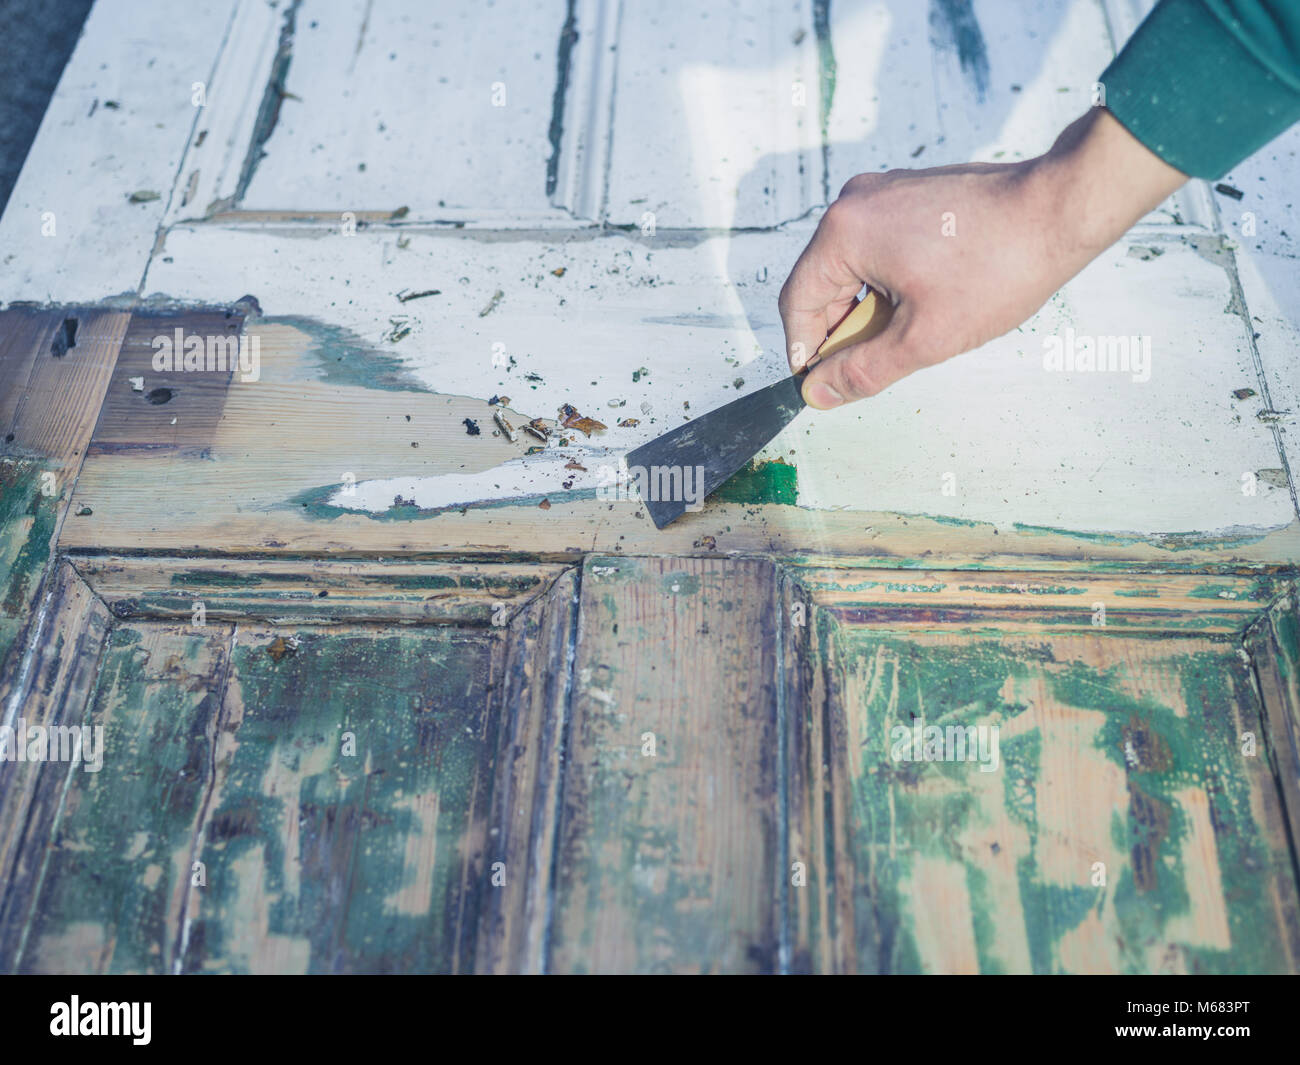 remove paint wood stock photos remove paint wood stock images alamy